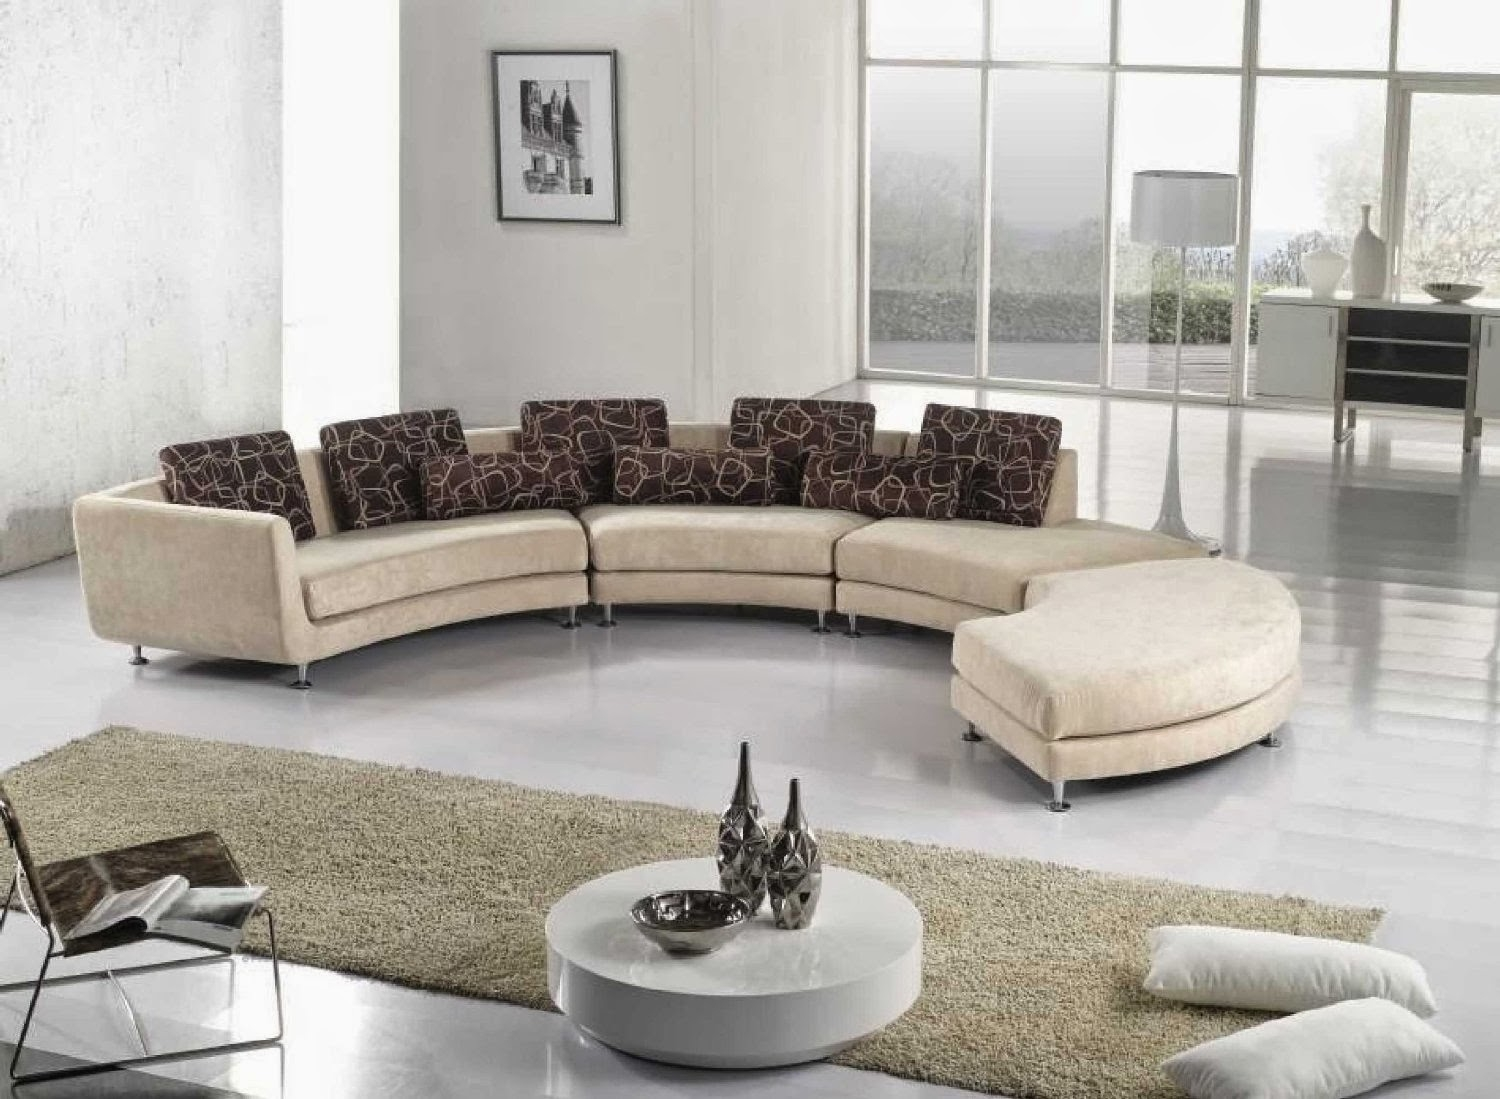 Curved Sofa Curved Sectional Sofa Intended For Contemporary Curved Sofas (#6 of 12)